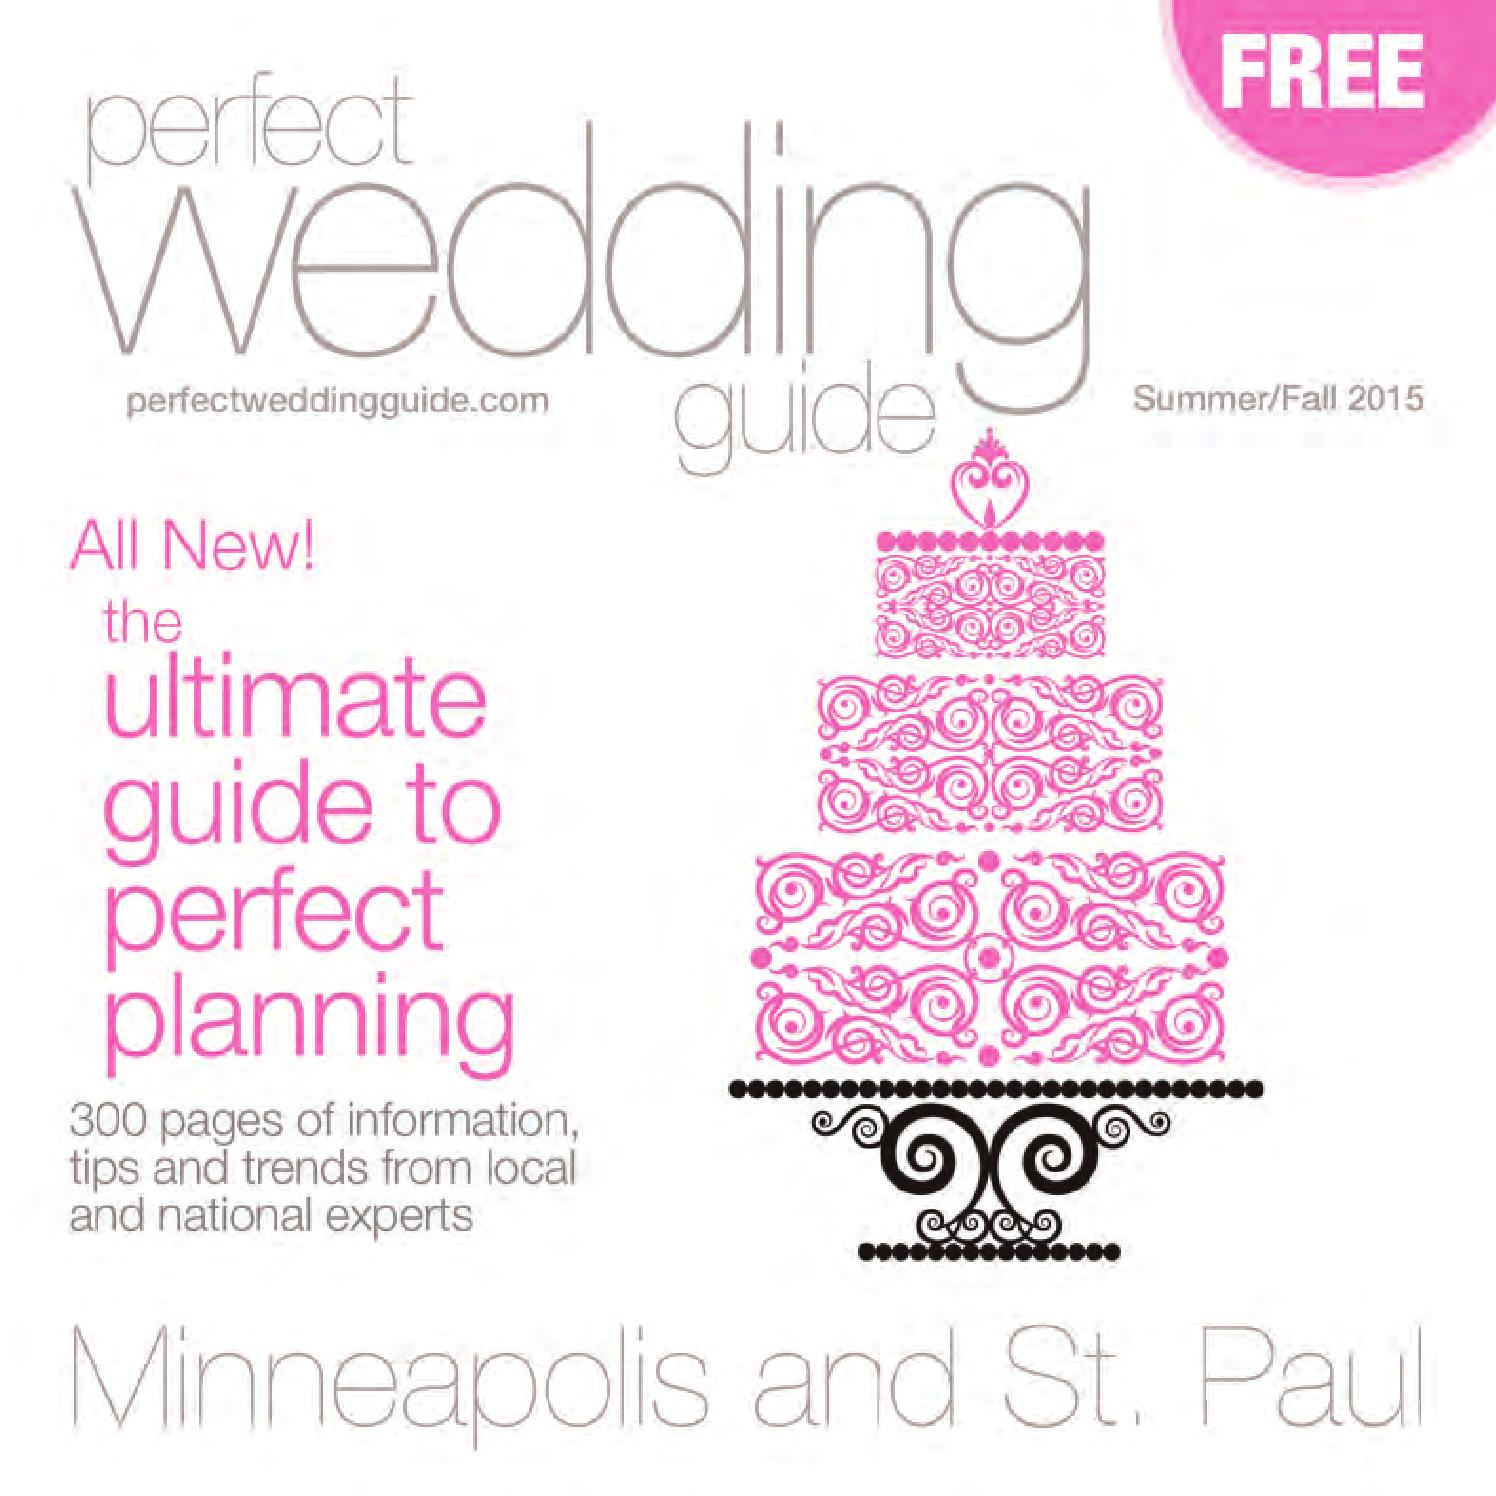 Perfect Wedding Guide Twin Cities Summer/Fall 2015 by Rick Caldwell ...